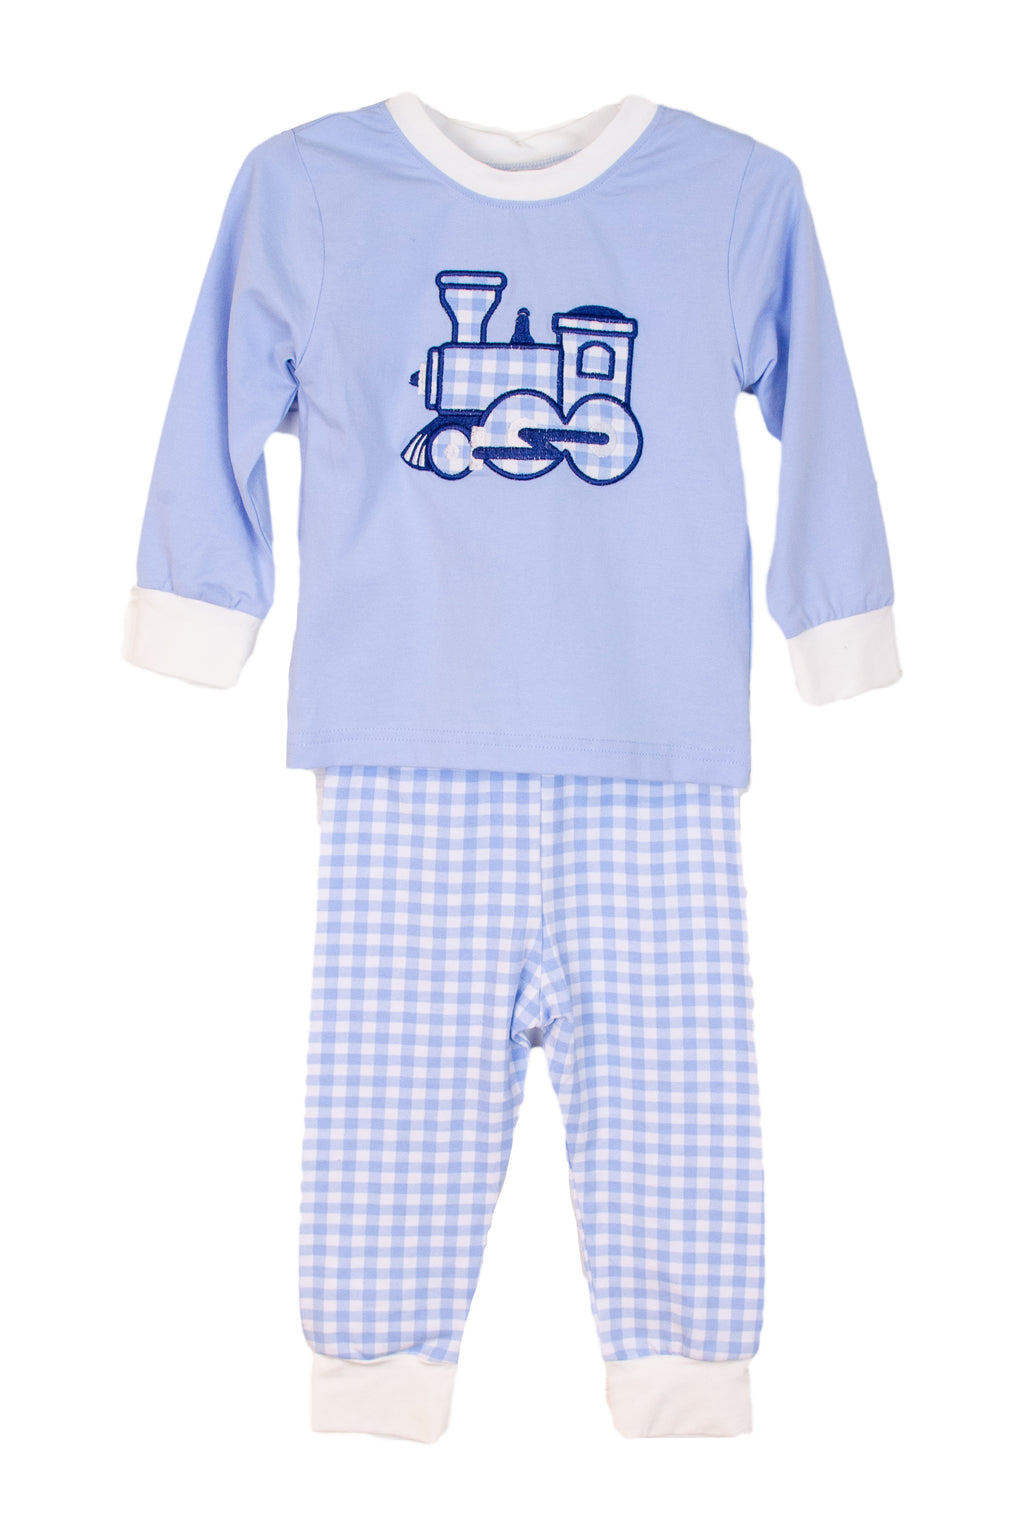 Boys Knit Train Pajamas